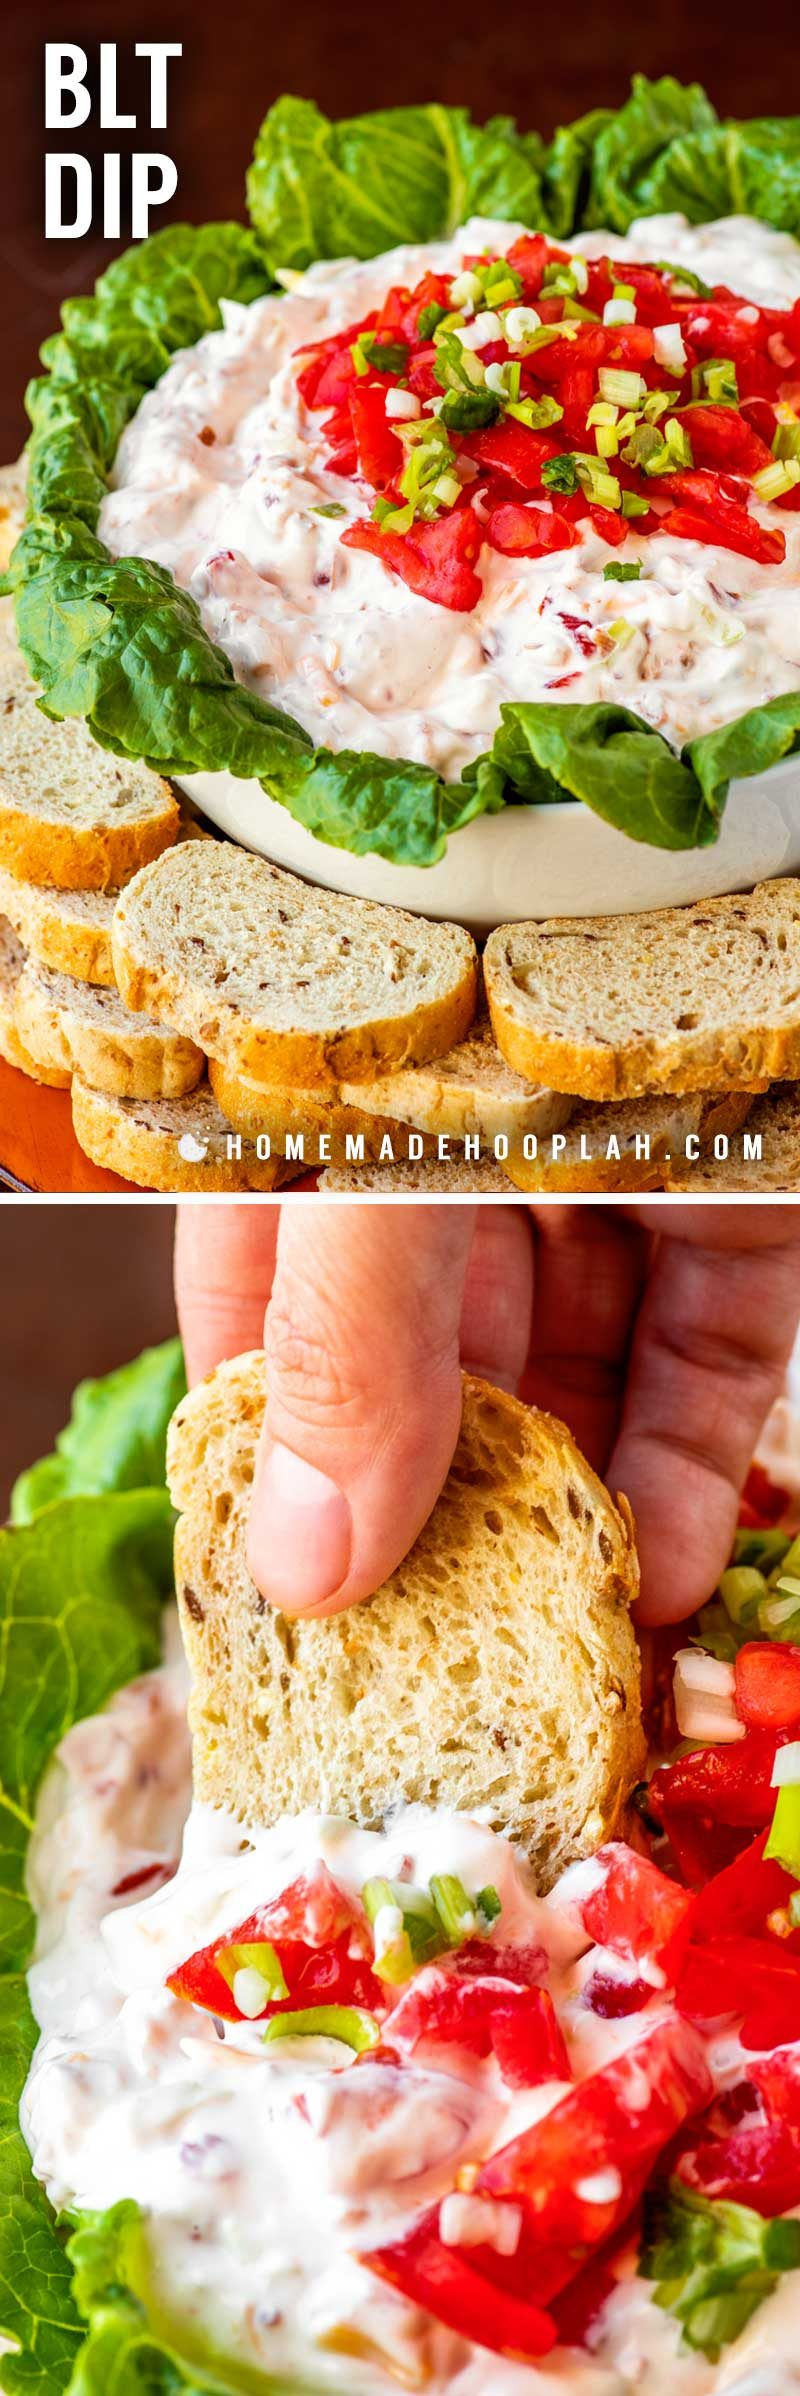 BLT Dip! The classic sandwich gets the appetizer treatment with this creamy chilled BLT dip. Line the bowl with lettuce leaves for a classy look and serve with toasted bread for an authentic BLT taste. | HomemadeHooplah.com